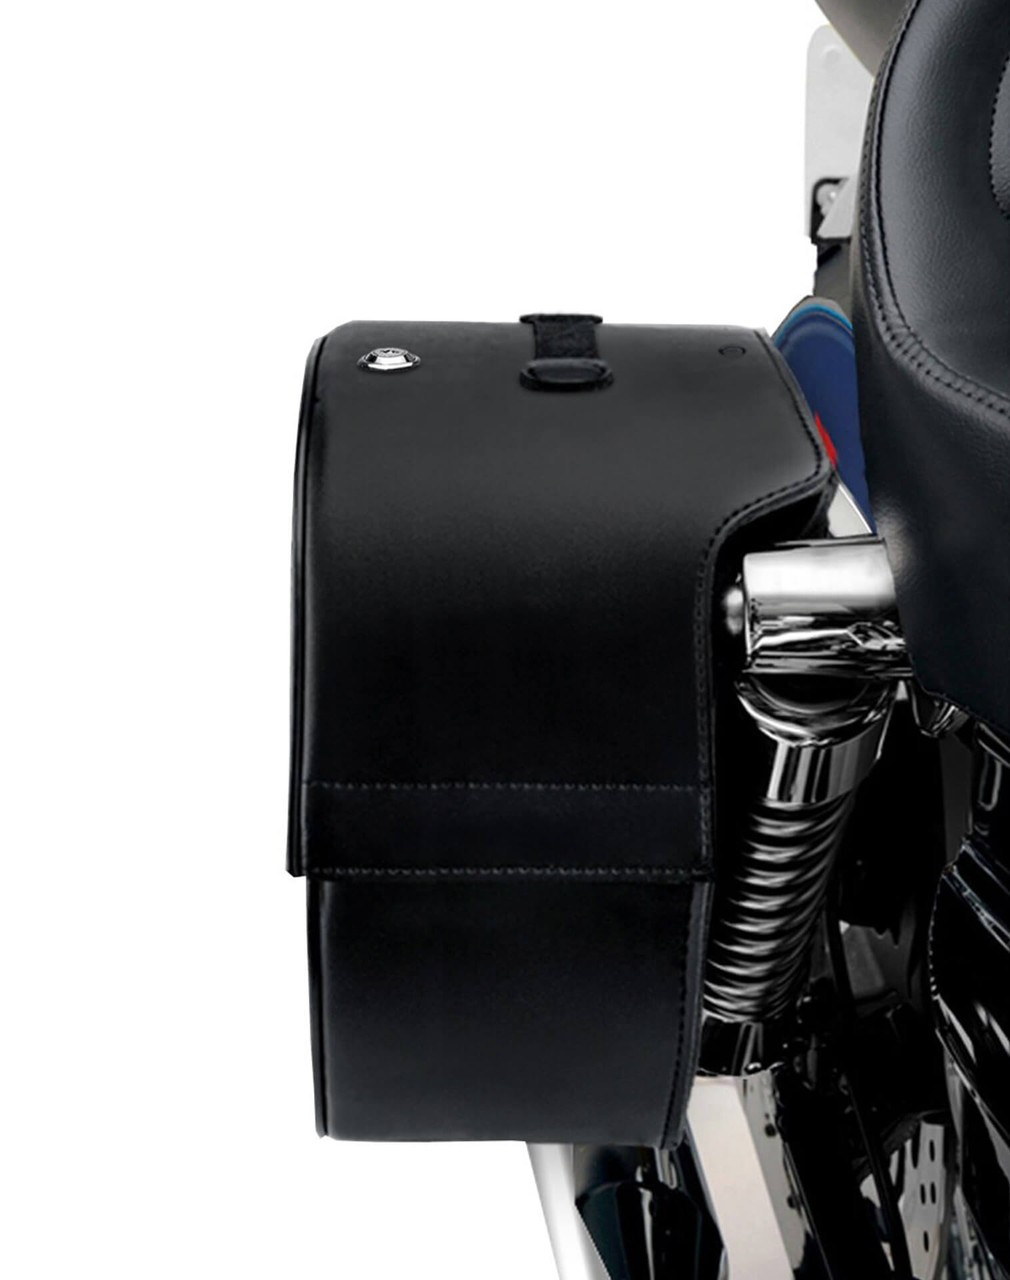 Viking Spear Large Shock Cutout With Studs Motorcycle Saddlebags For Harley Street 750 Shock cutout view